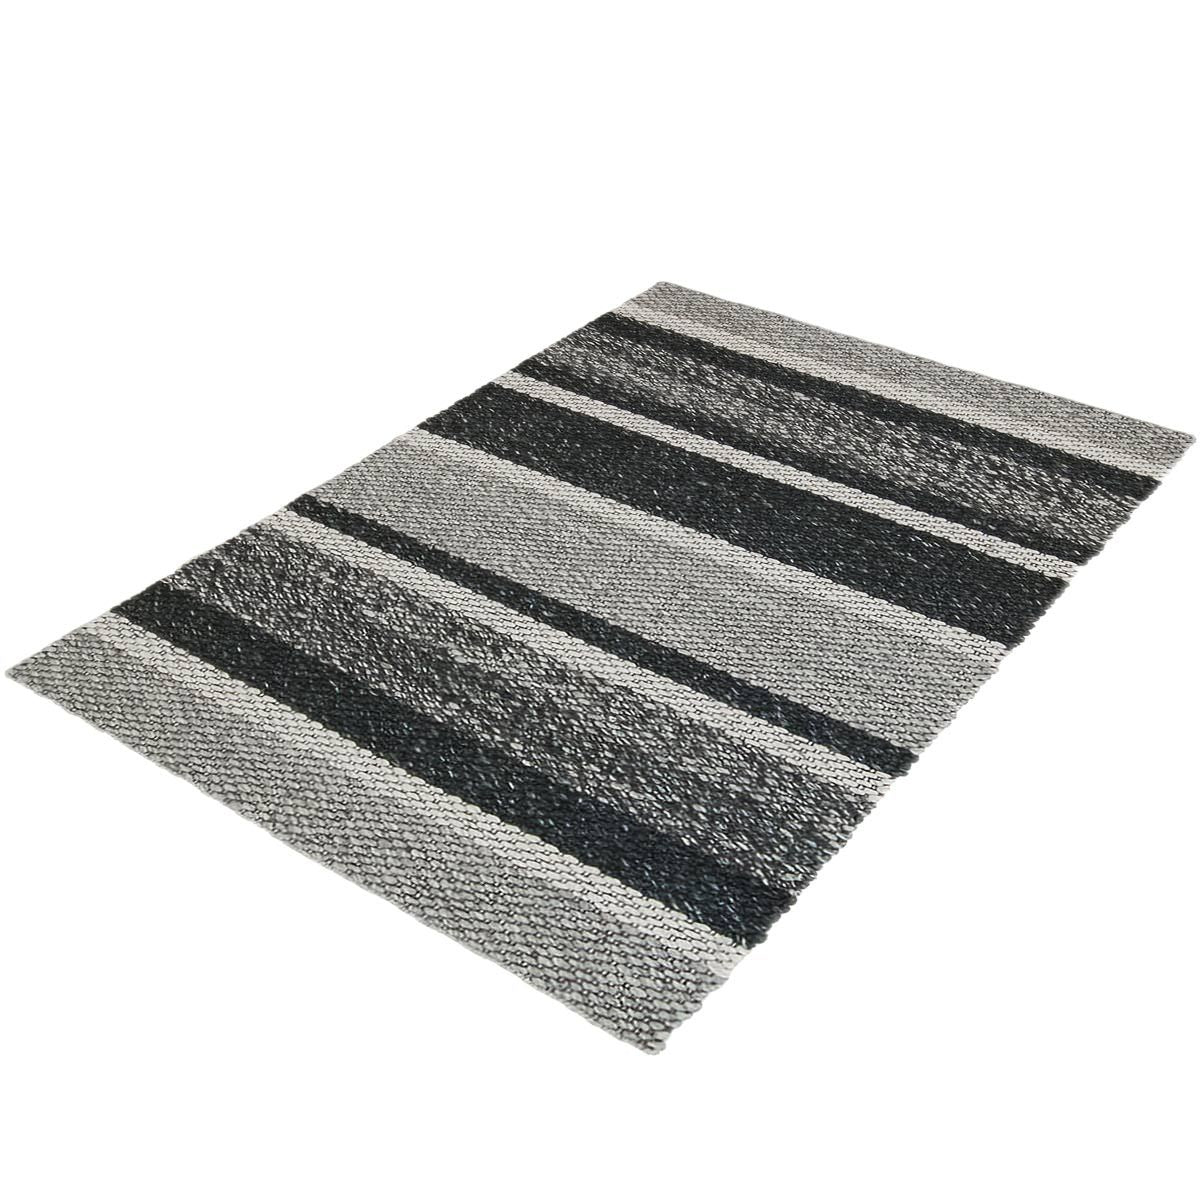 Braided Jute Rug 02 Grey/Black 3